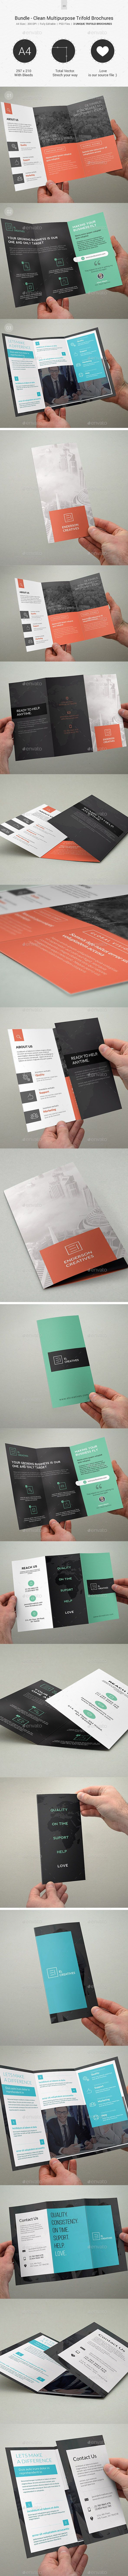 Bundle - Clean Multipurpose Trifold Brochures Template #design Download: http://graphicriver.net/item/bundle-clean-multipurpose-trifold-brochures-08/12165643?ref=ksioks